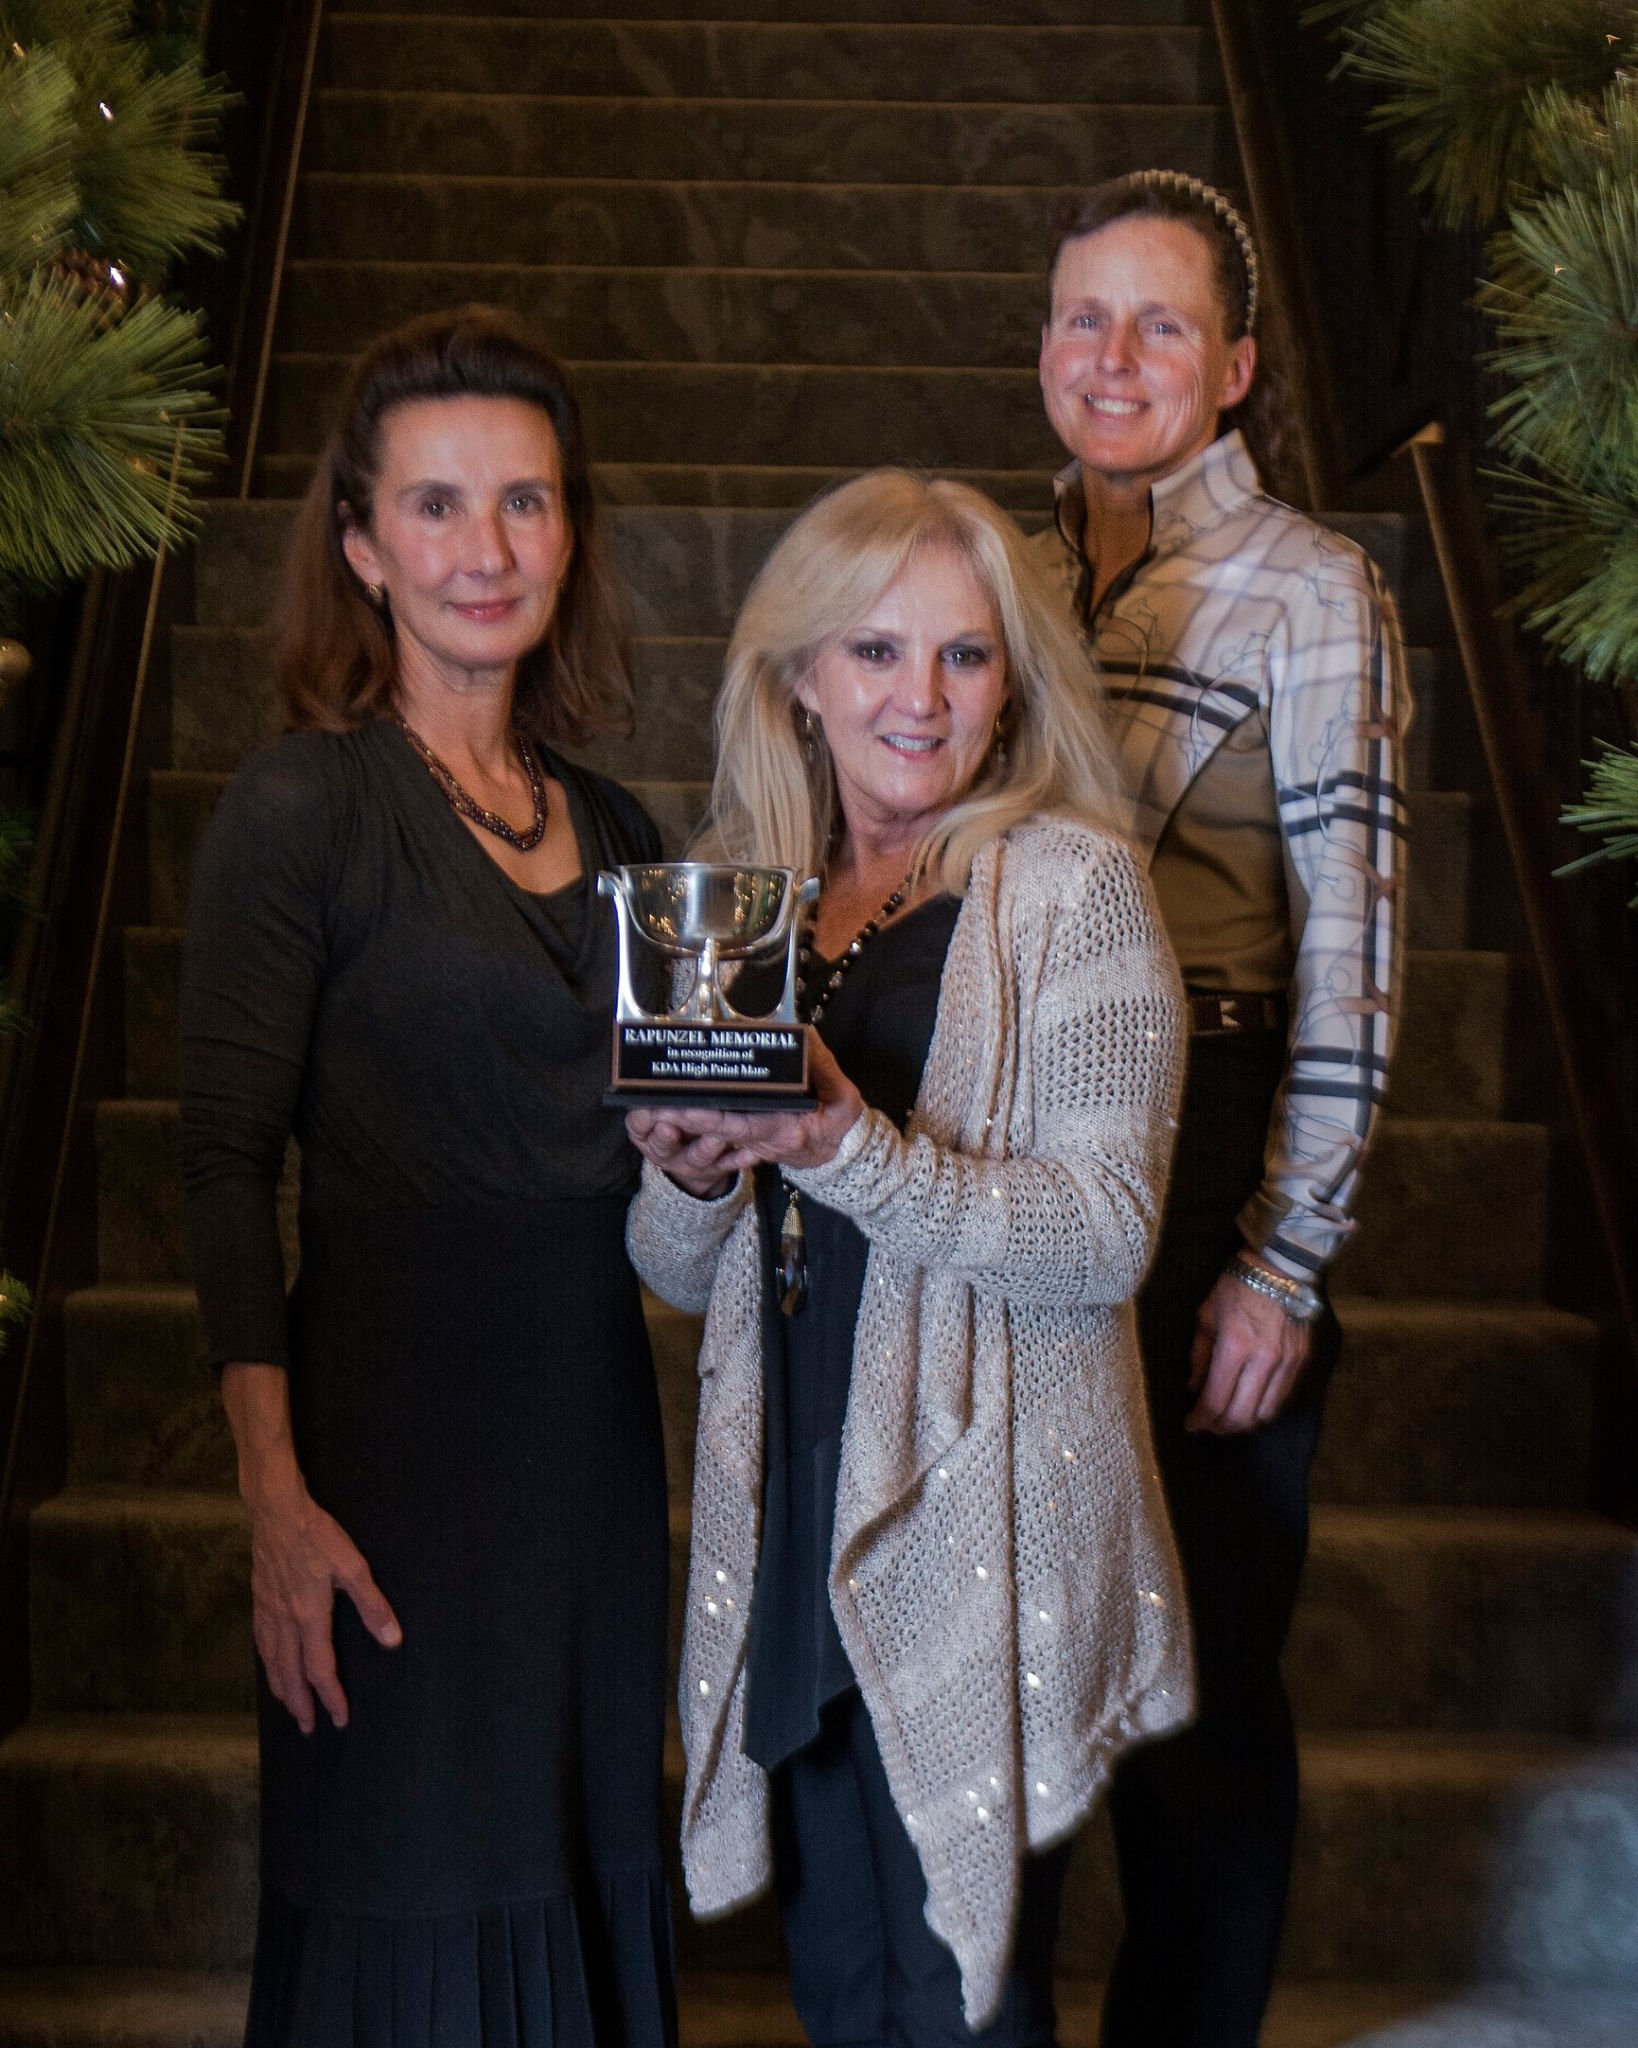 Presenting the Rapunzel Award winner Jackie Beasley with Jennifer Sloan and Linda Strine